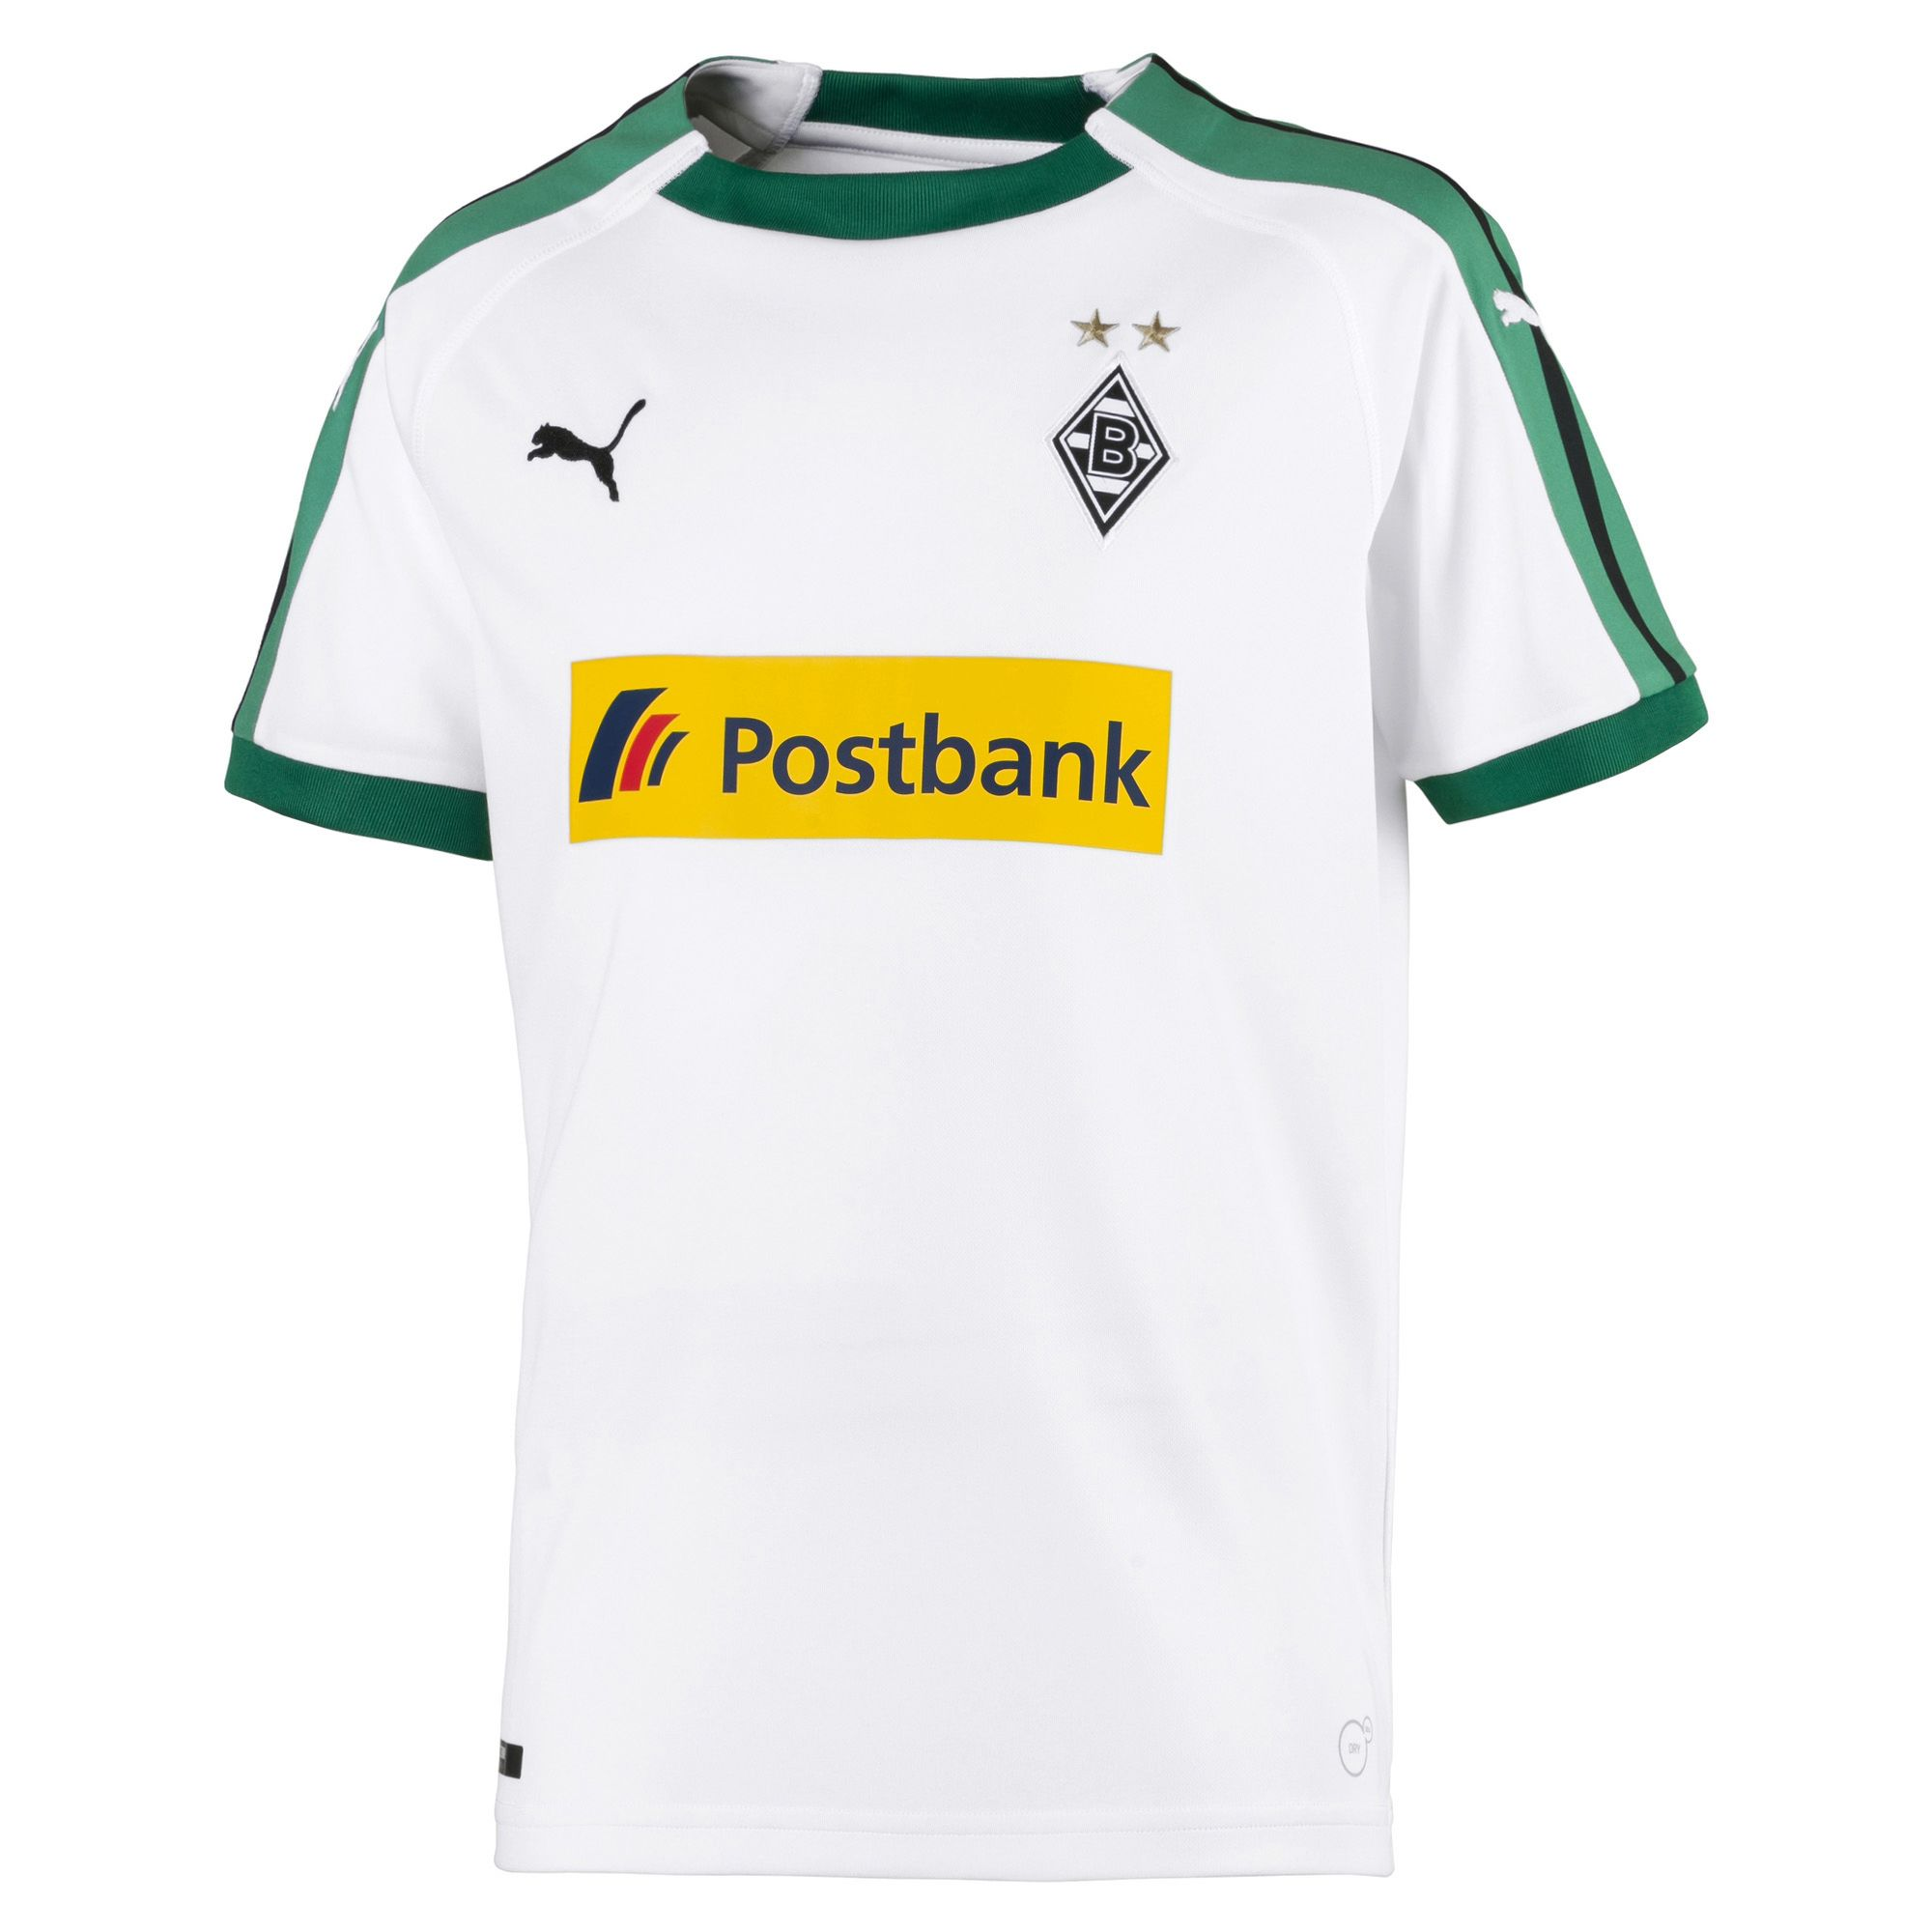 puma bmg borussia m nchengladbach trikot home kinder 2018 2019 fantrikots fanshop bundesliga. Black Bedroom Furniture Sets. Home Design Ideas